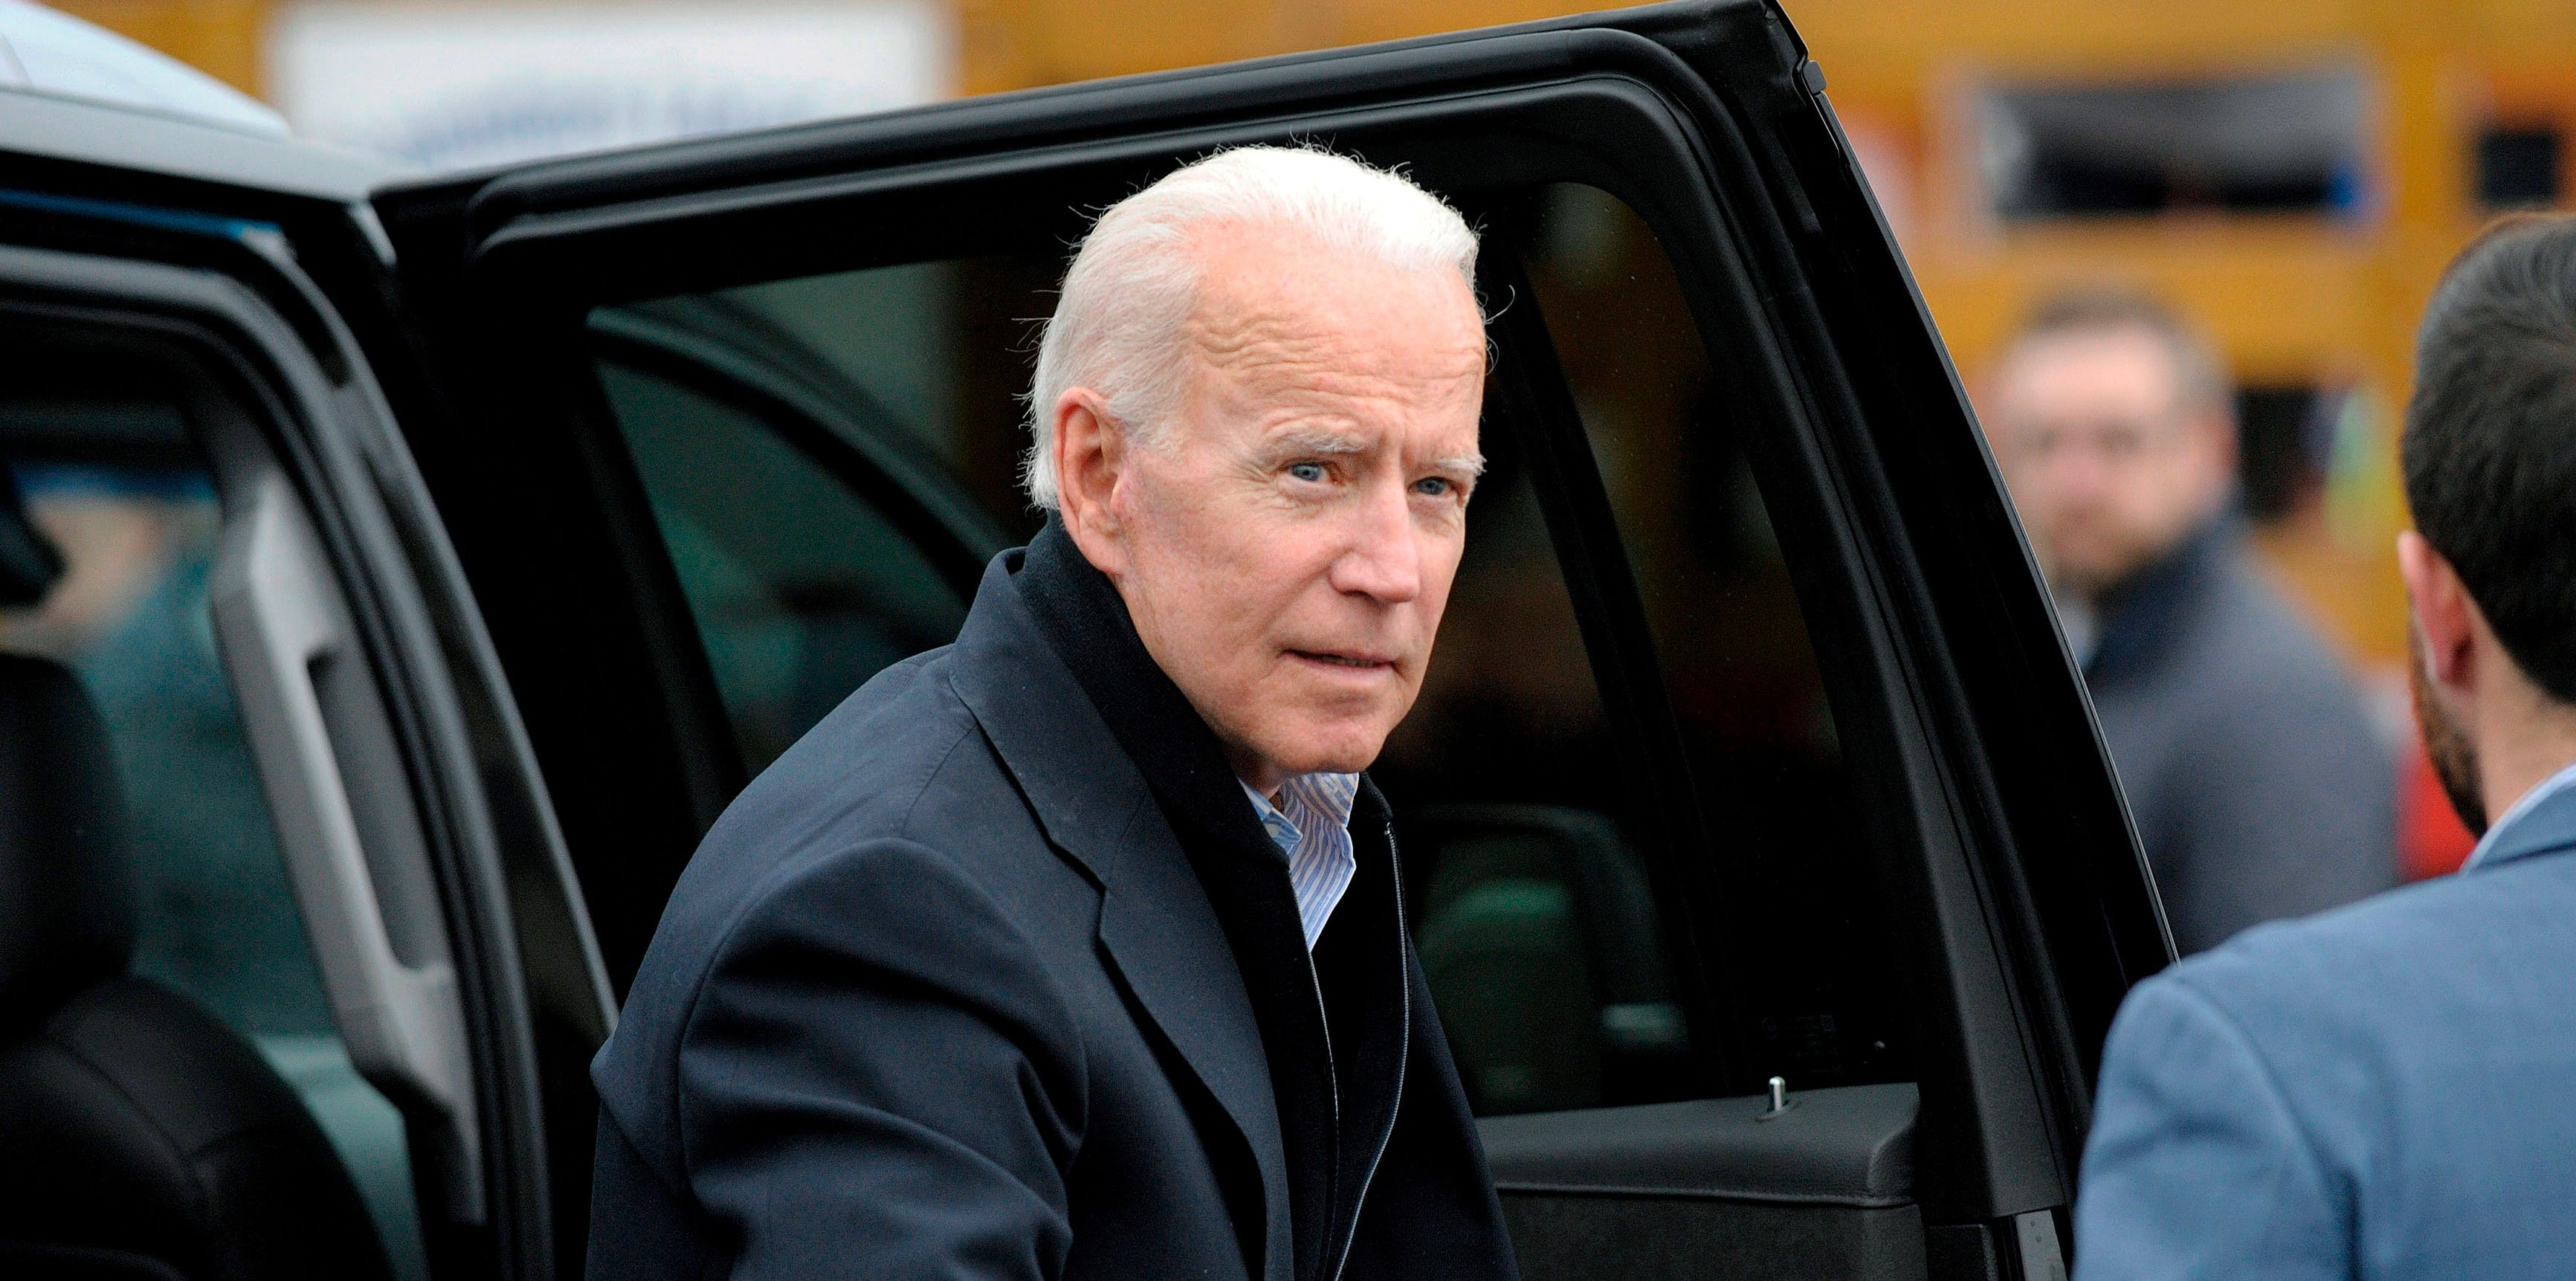 Joe Biden Launches Presidential Bid With Fundraiser Filled With Corporate Lobbyists and GOP Donors